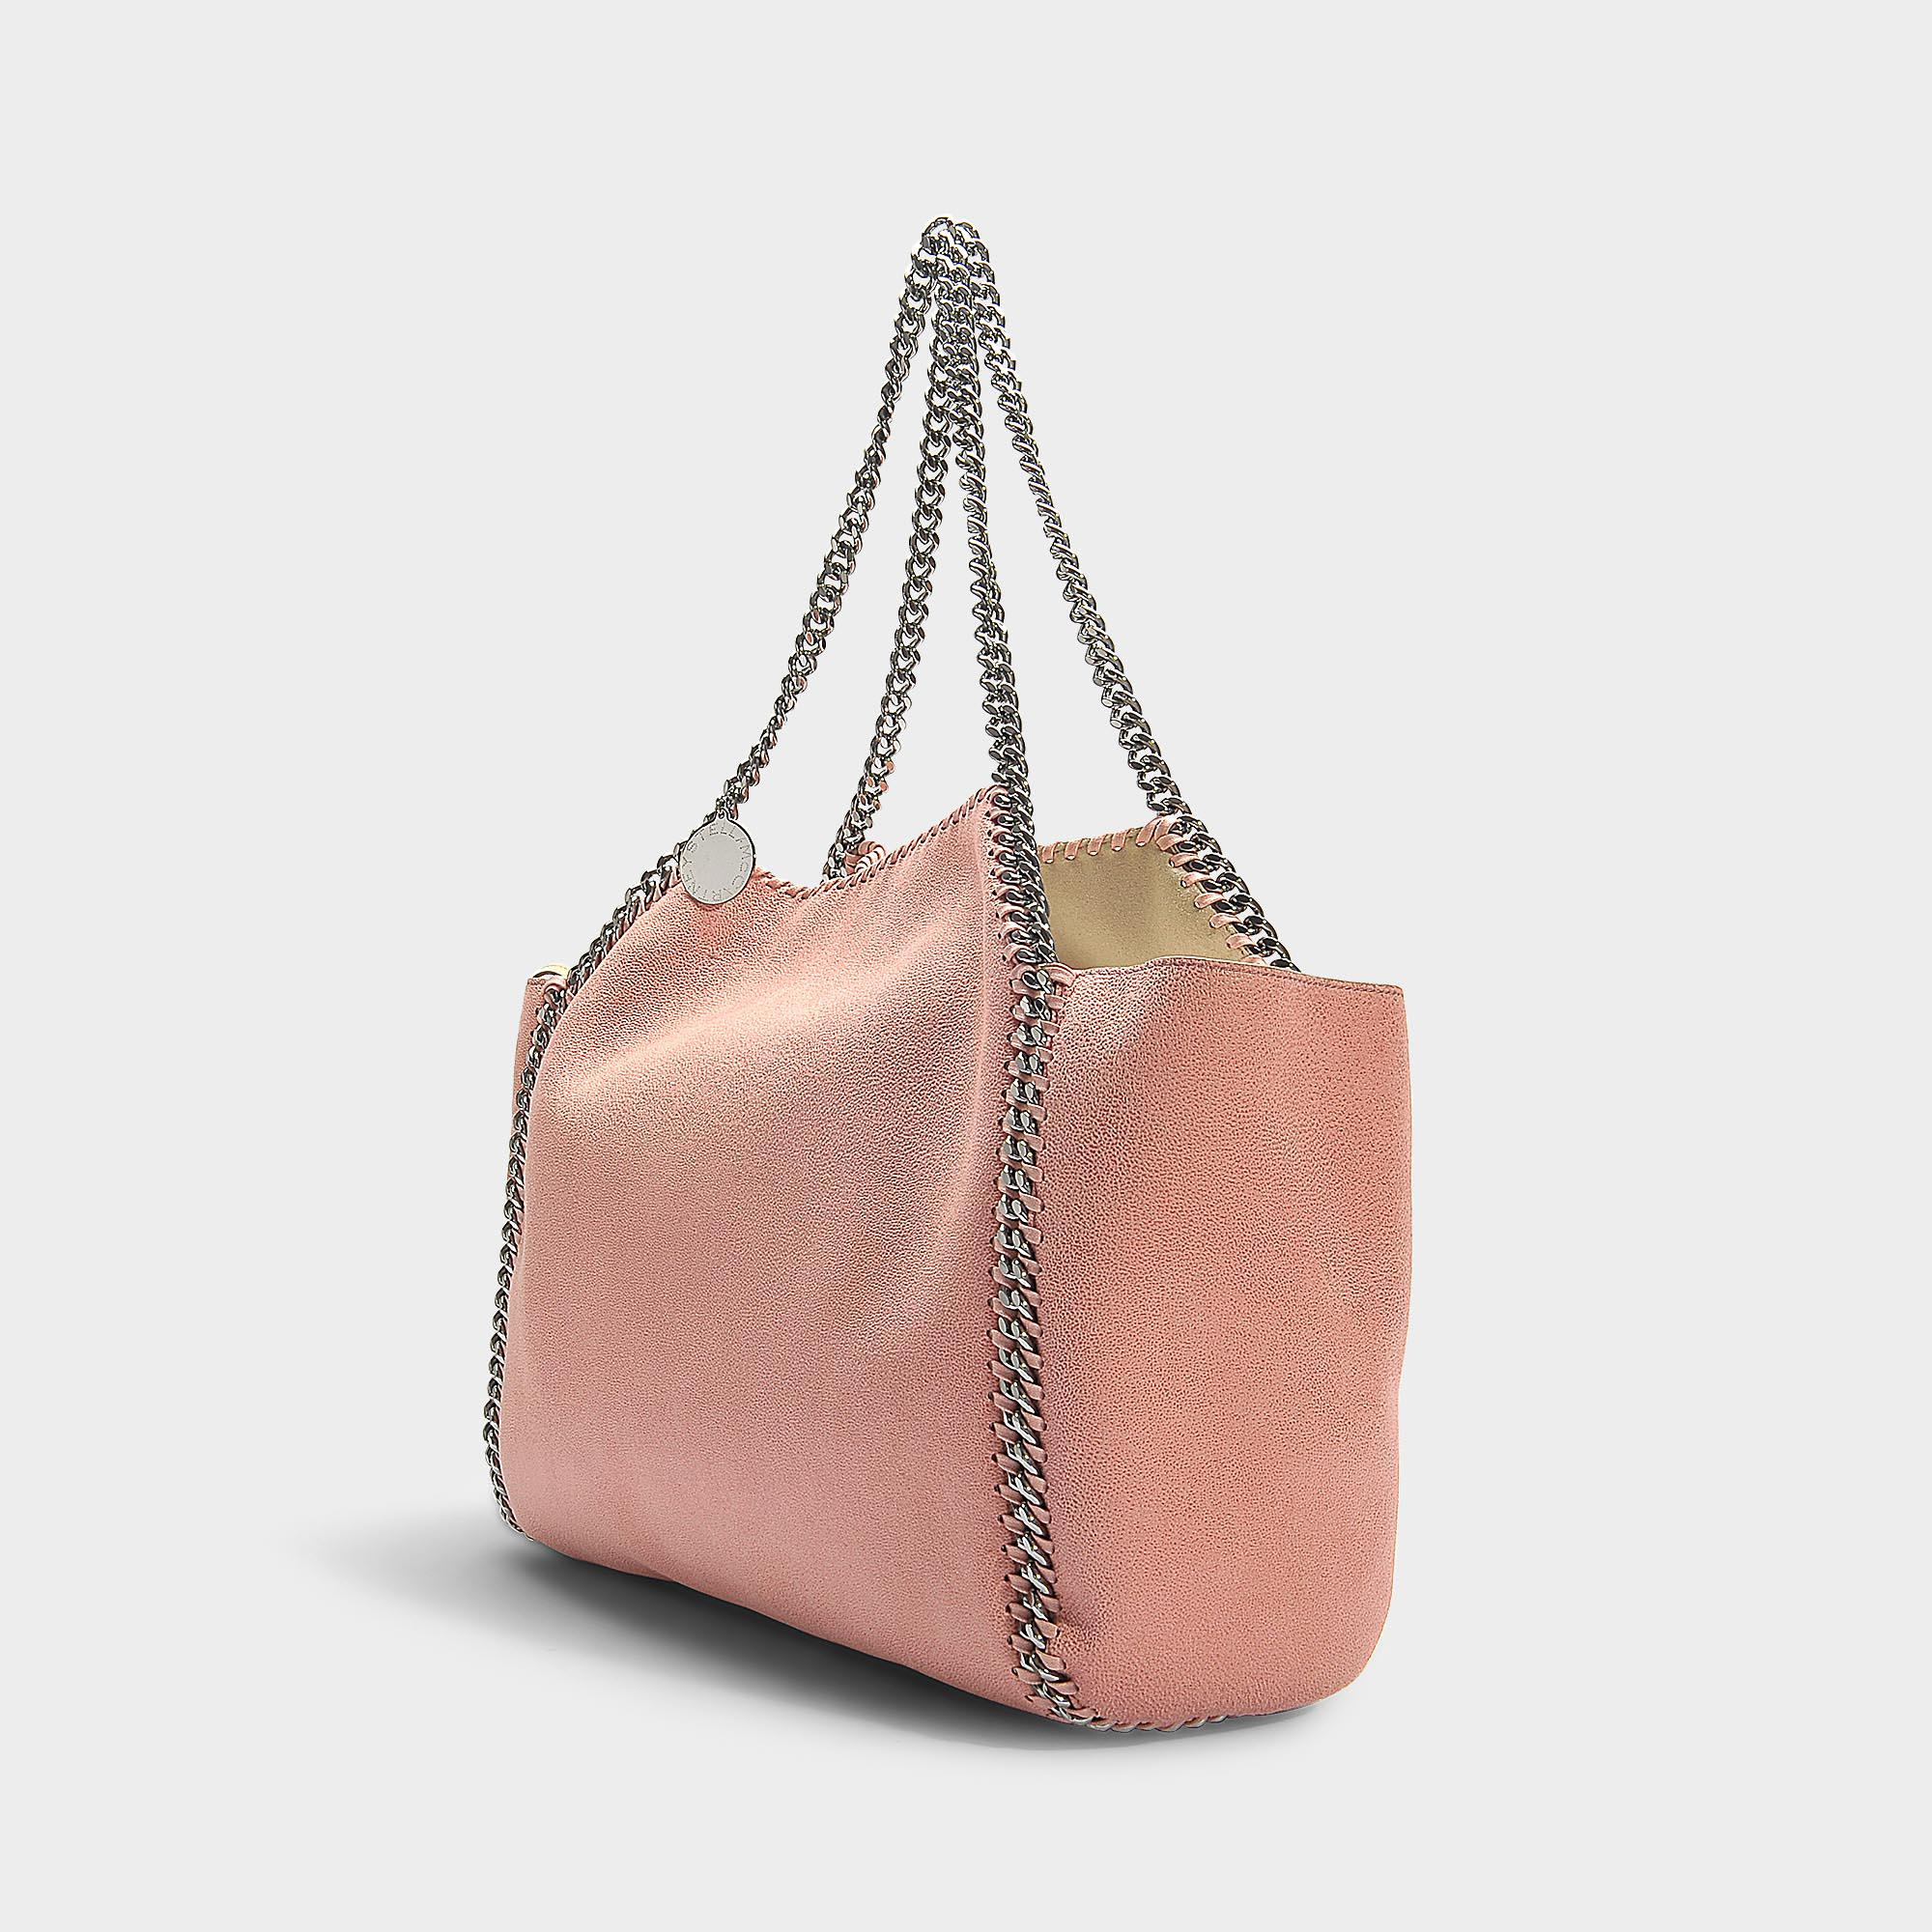 15df1a98f3c4 ... Falabella Small Tote Bag In Blush Synthetic Material - Lyst. View  fullscreen